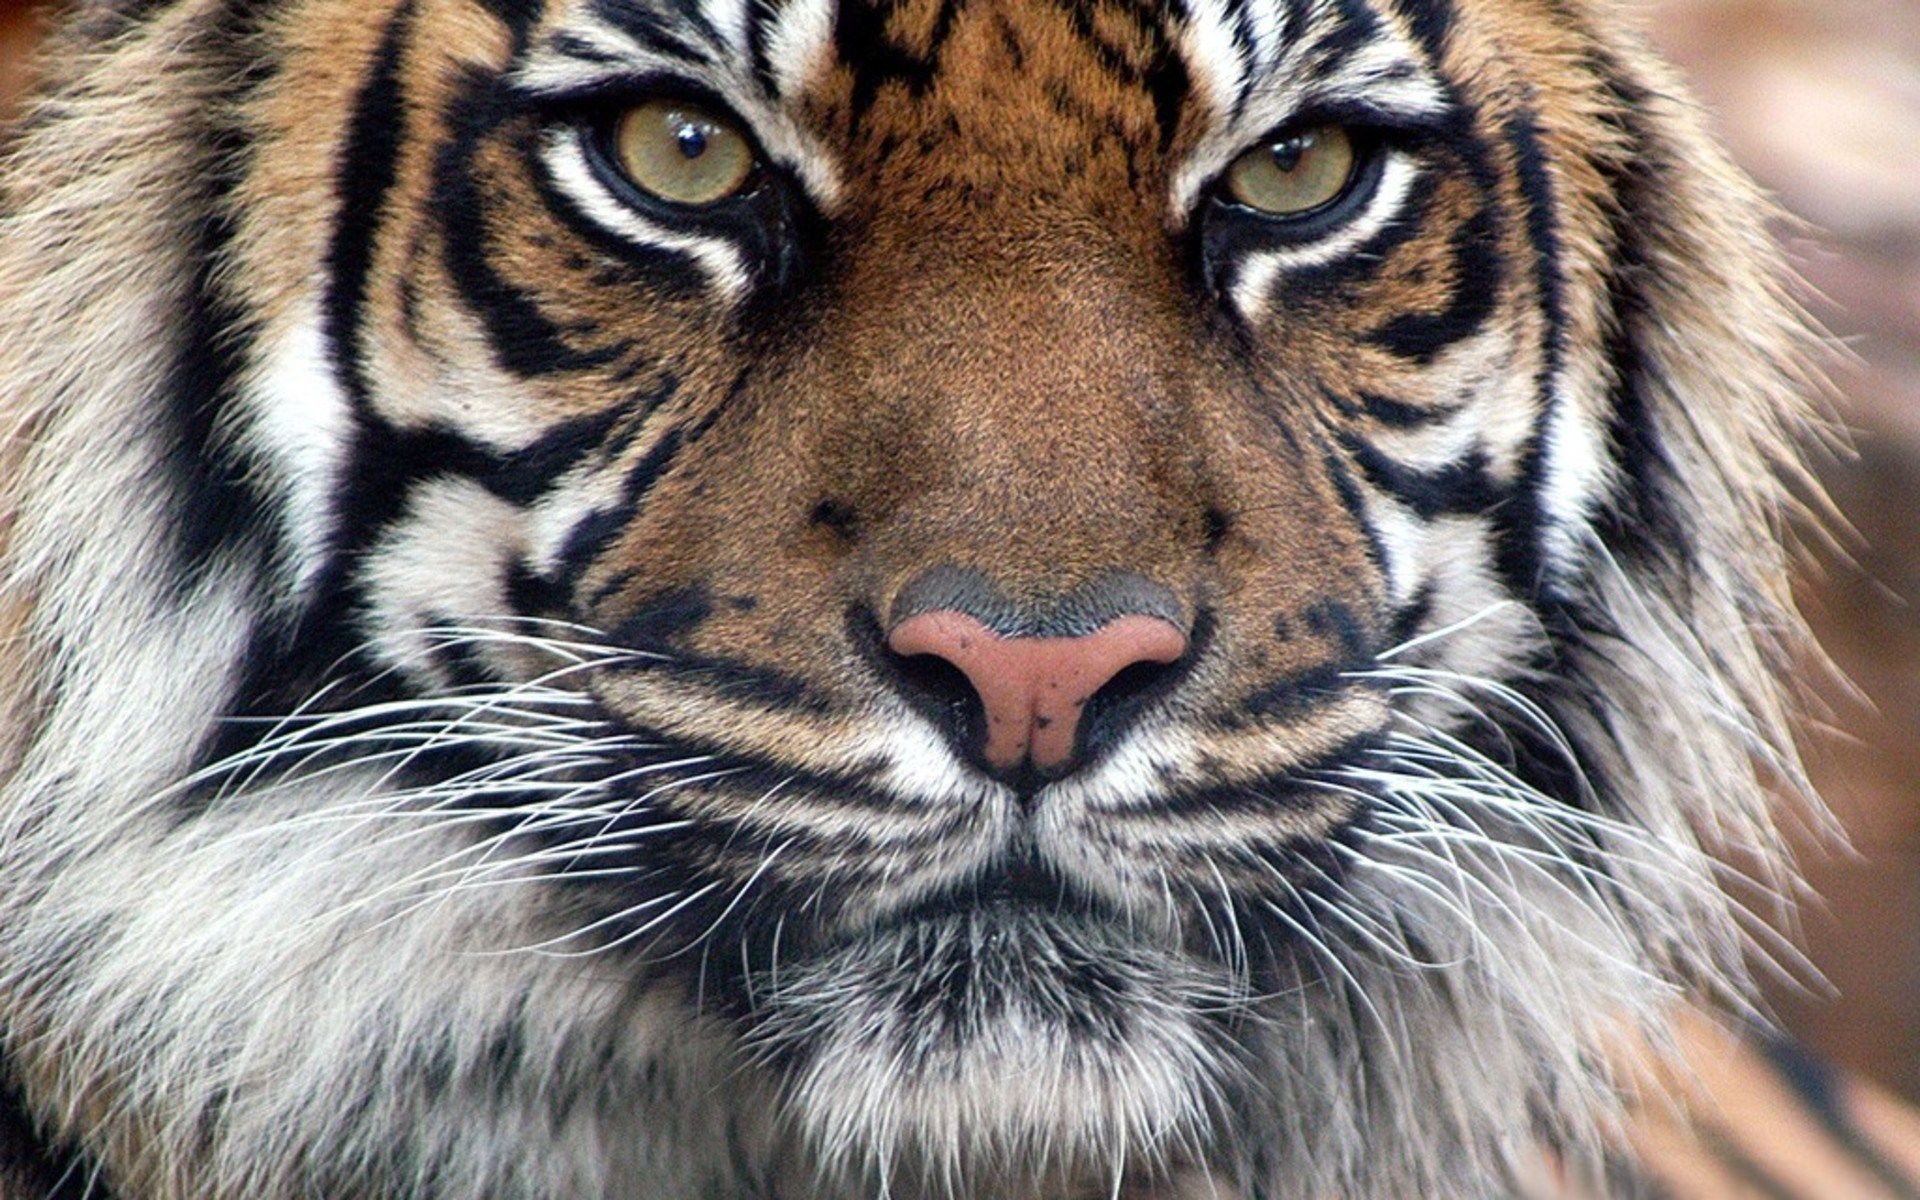 Wall stickers wilko - 1920x1200 Px Wallpapers For Desktop Tiger Pic By Burke Wilkinson For Trunkweed Com